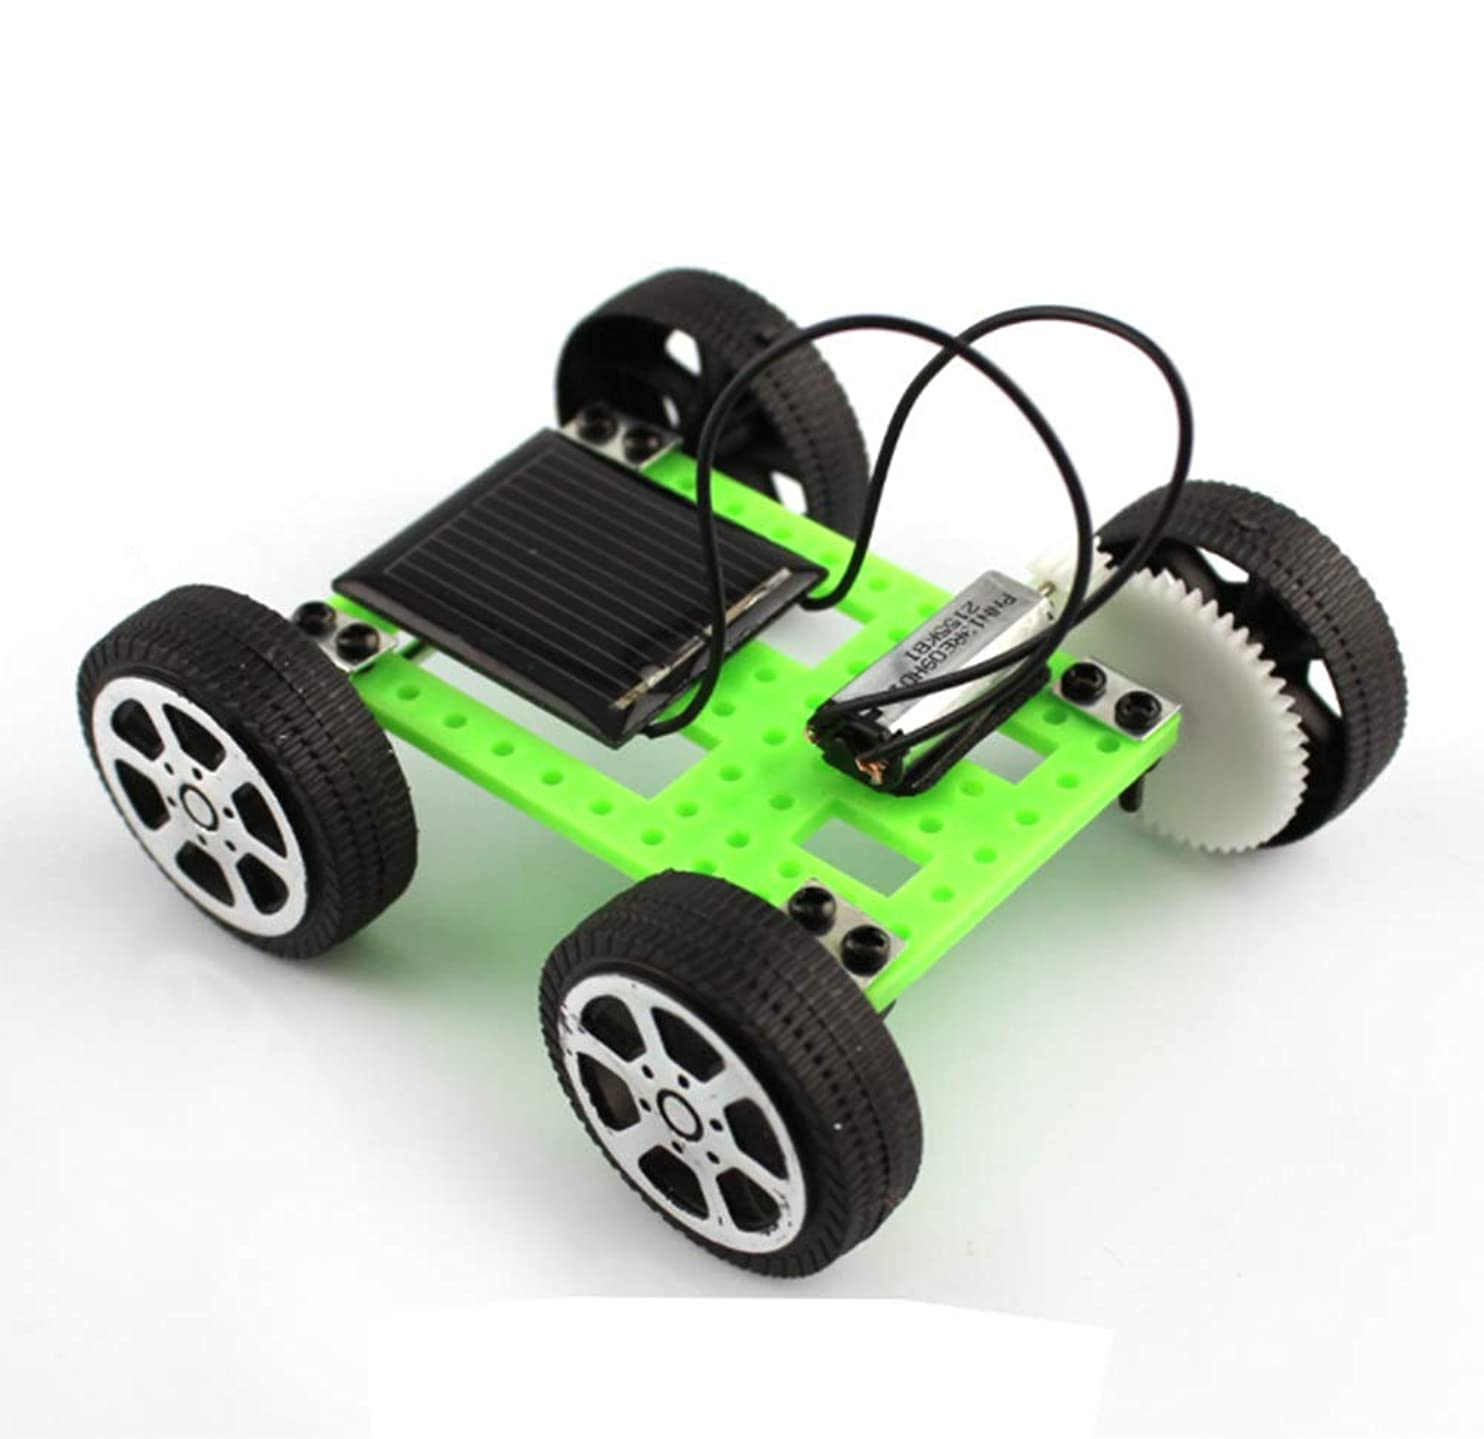 aiyuyu Solar and Wireless Remote Control Car Robotics Creative Engineering Circuit Science Stem Building Kit - Hybird Power for Electric Motor - DIY Experiment for Kids, Teens and Adults fskplpiyovx89